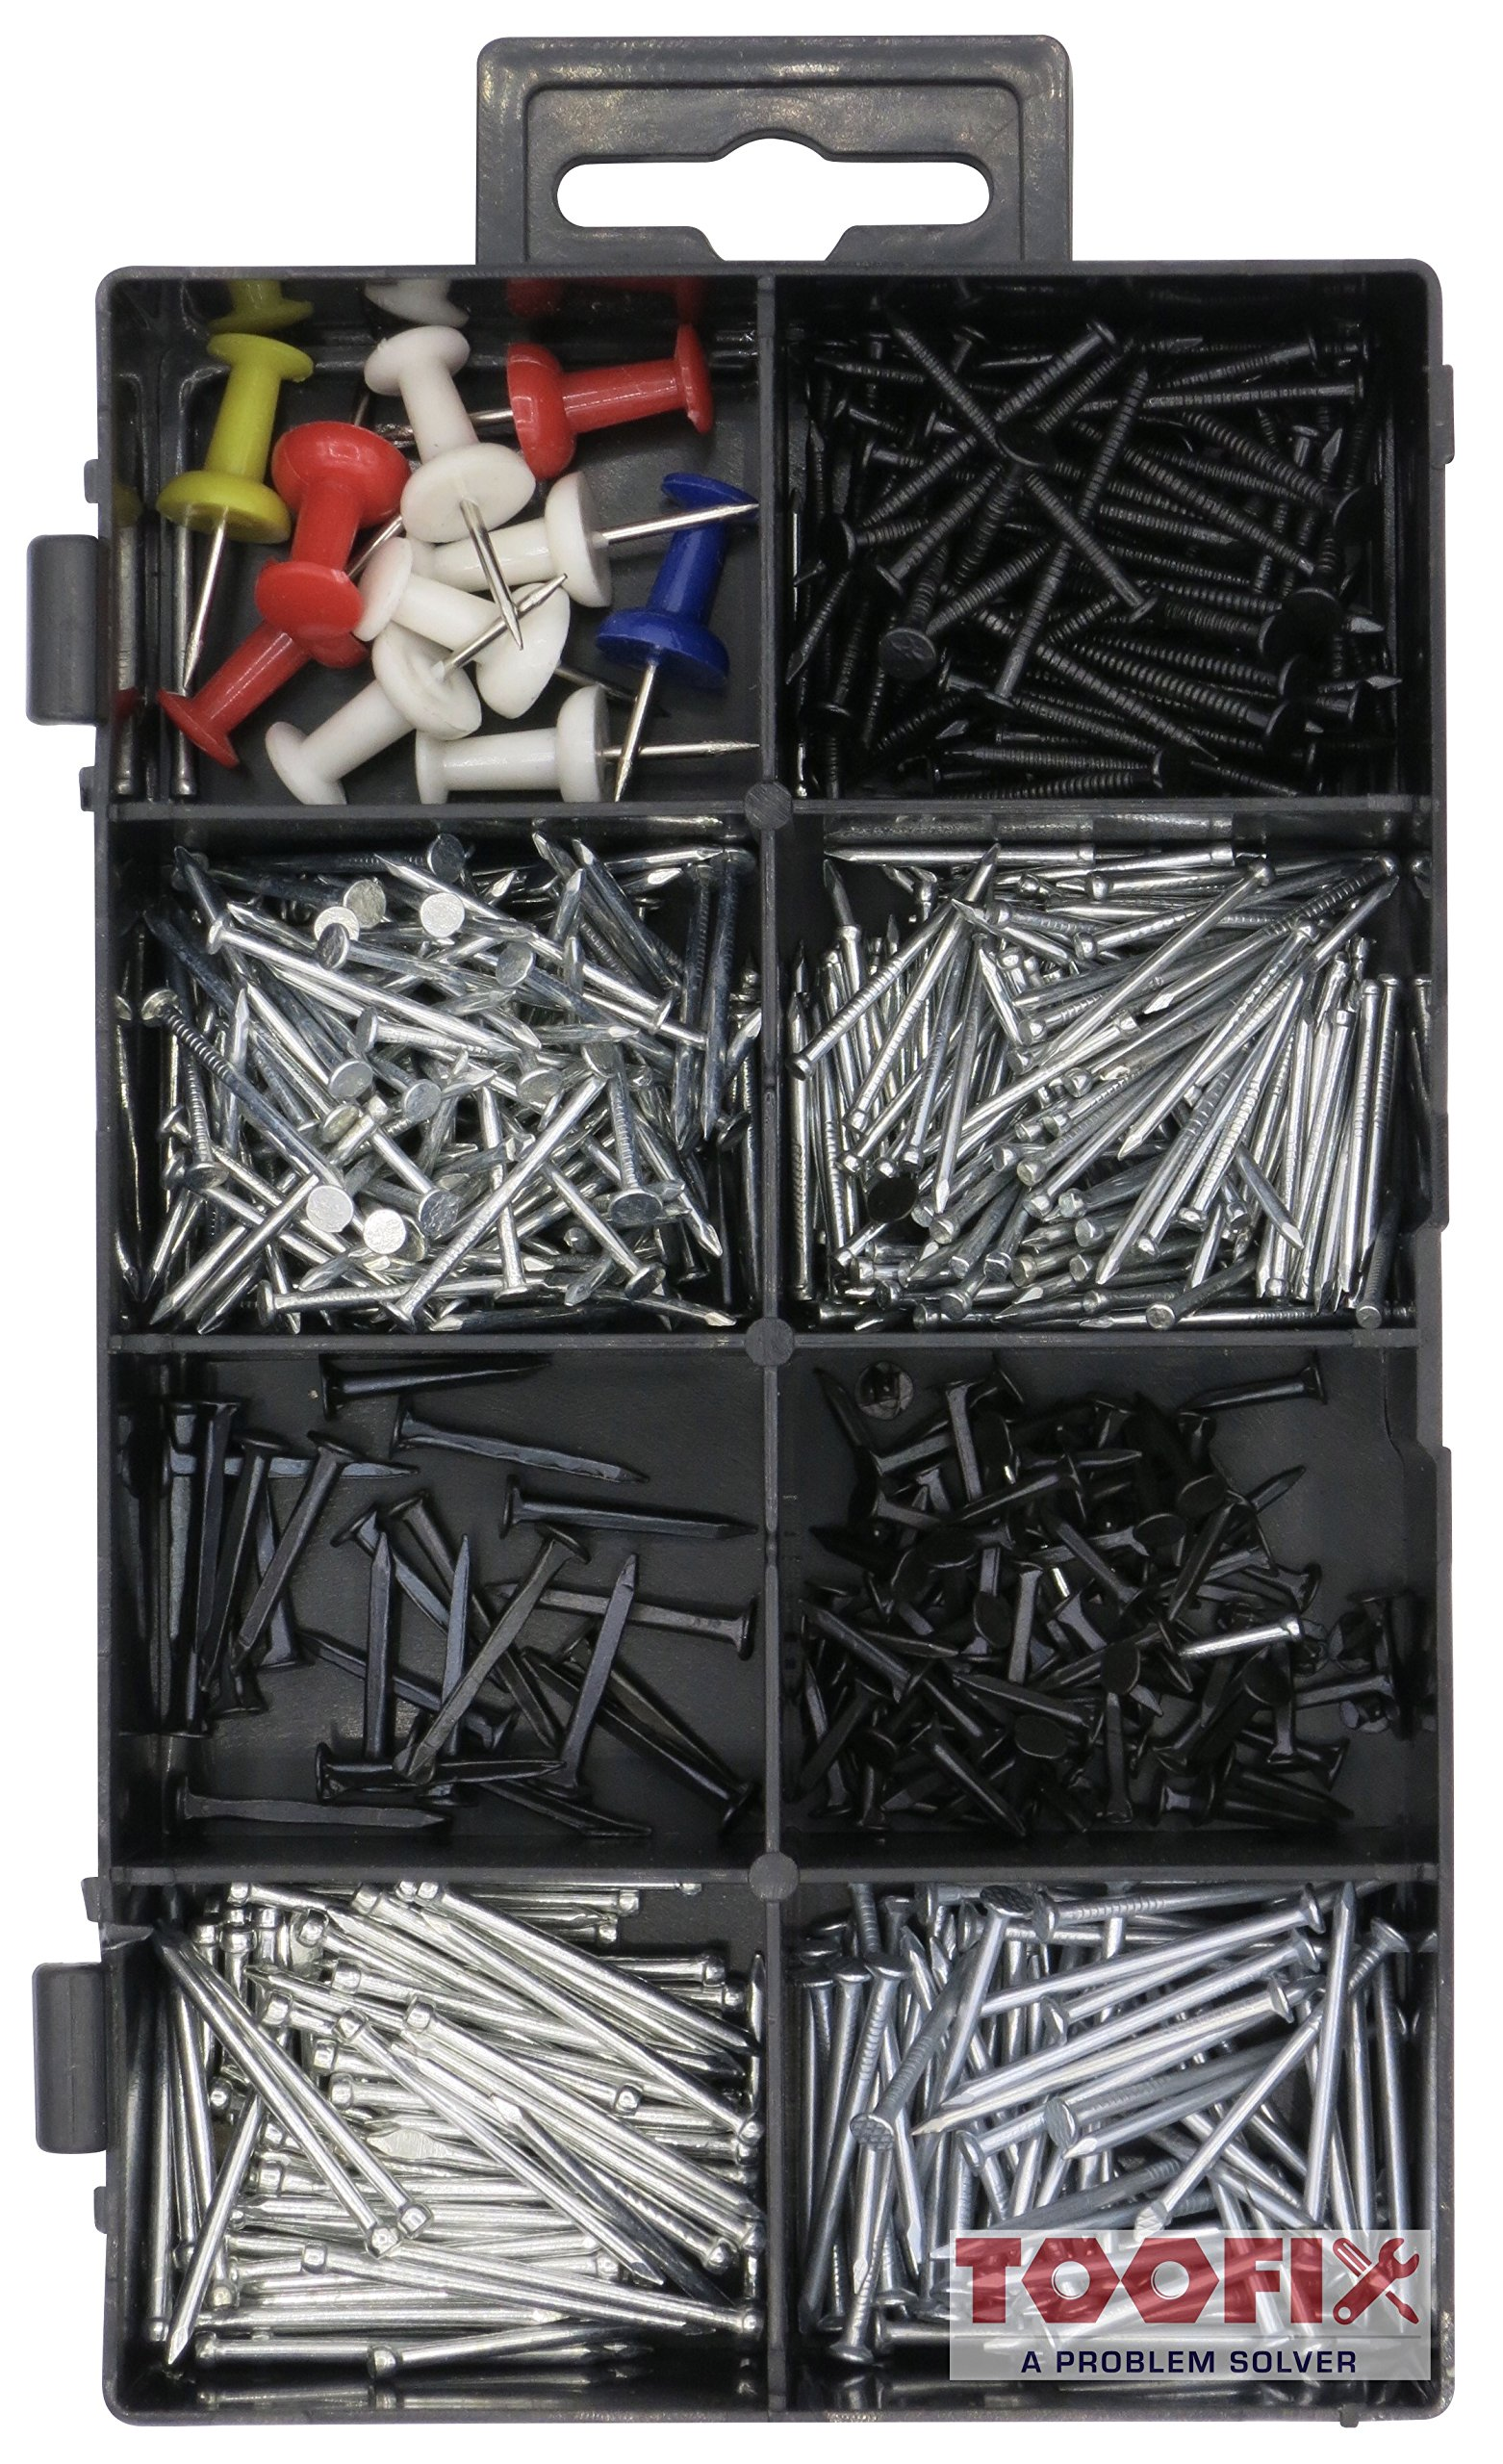 600 Pieces Small Nails and Tacks Assortment Kit, 8 Different Sizes